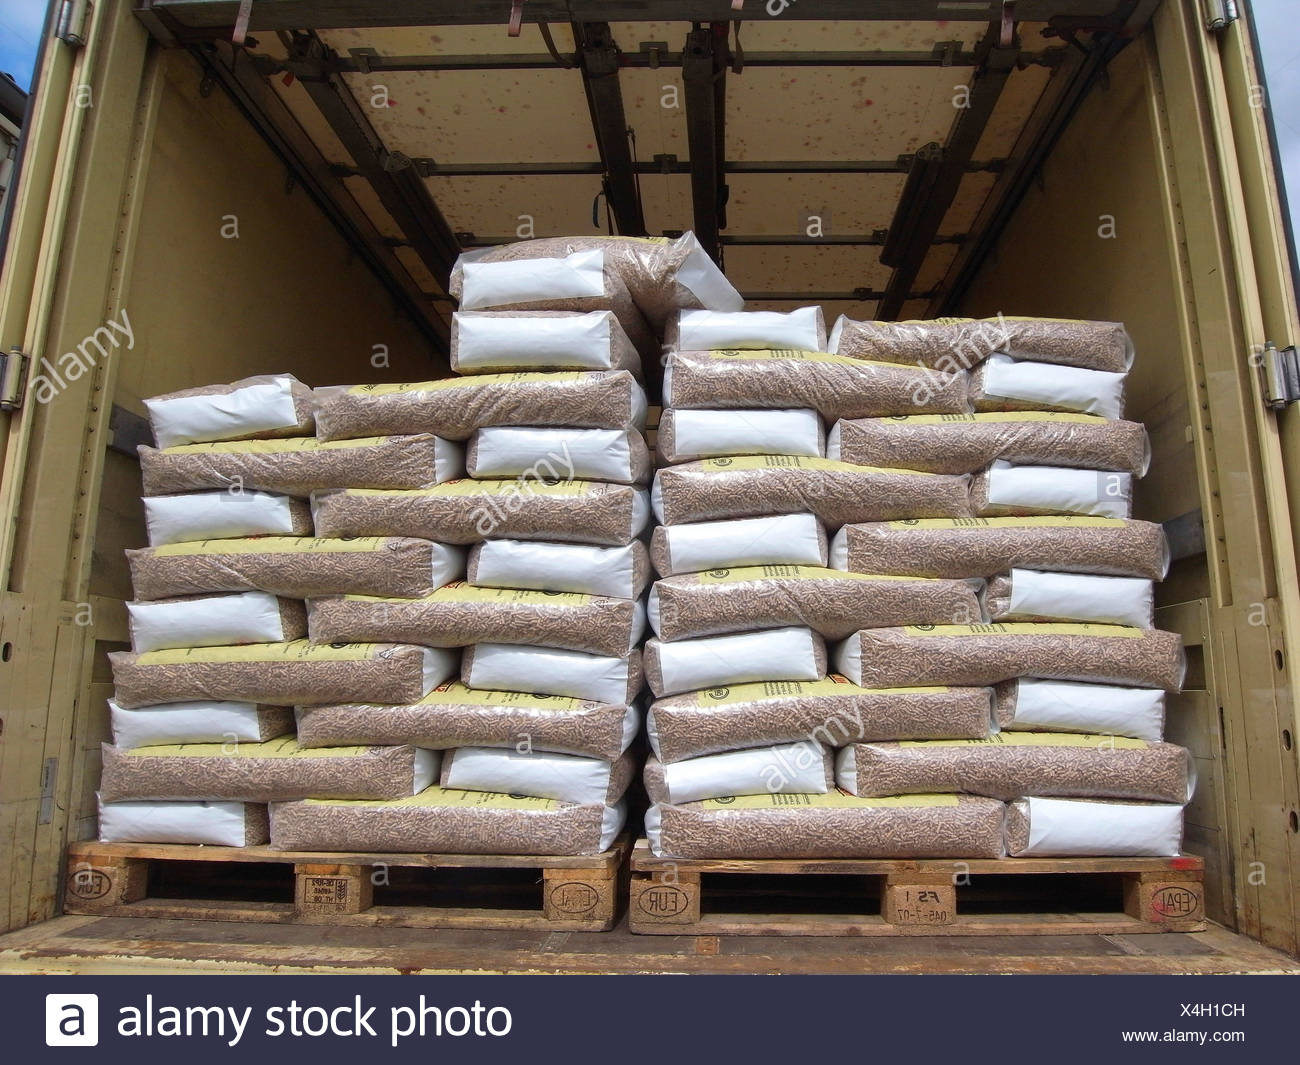 sacs of wood pellets in the cargo hold of a van - Stock Image